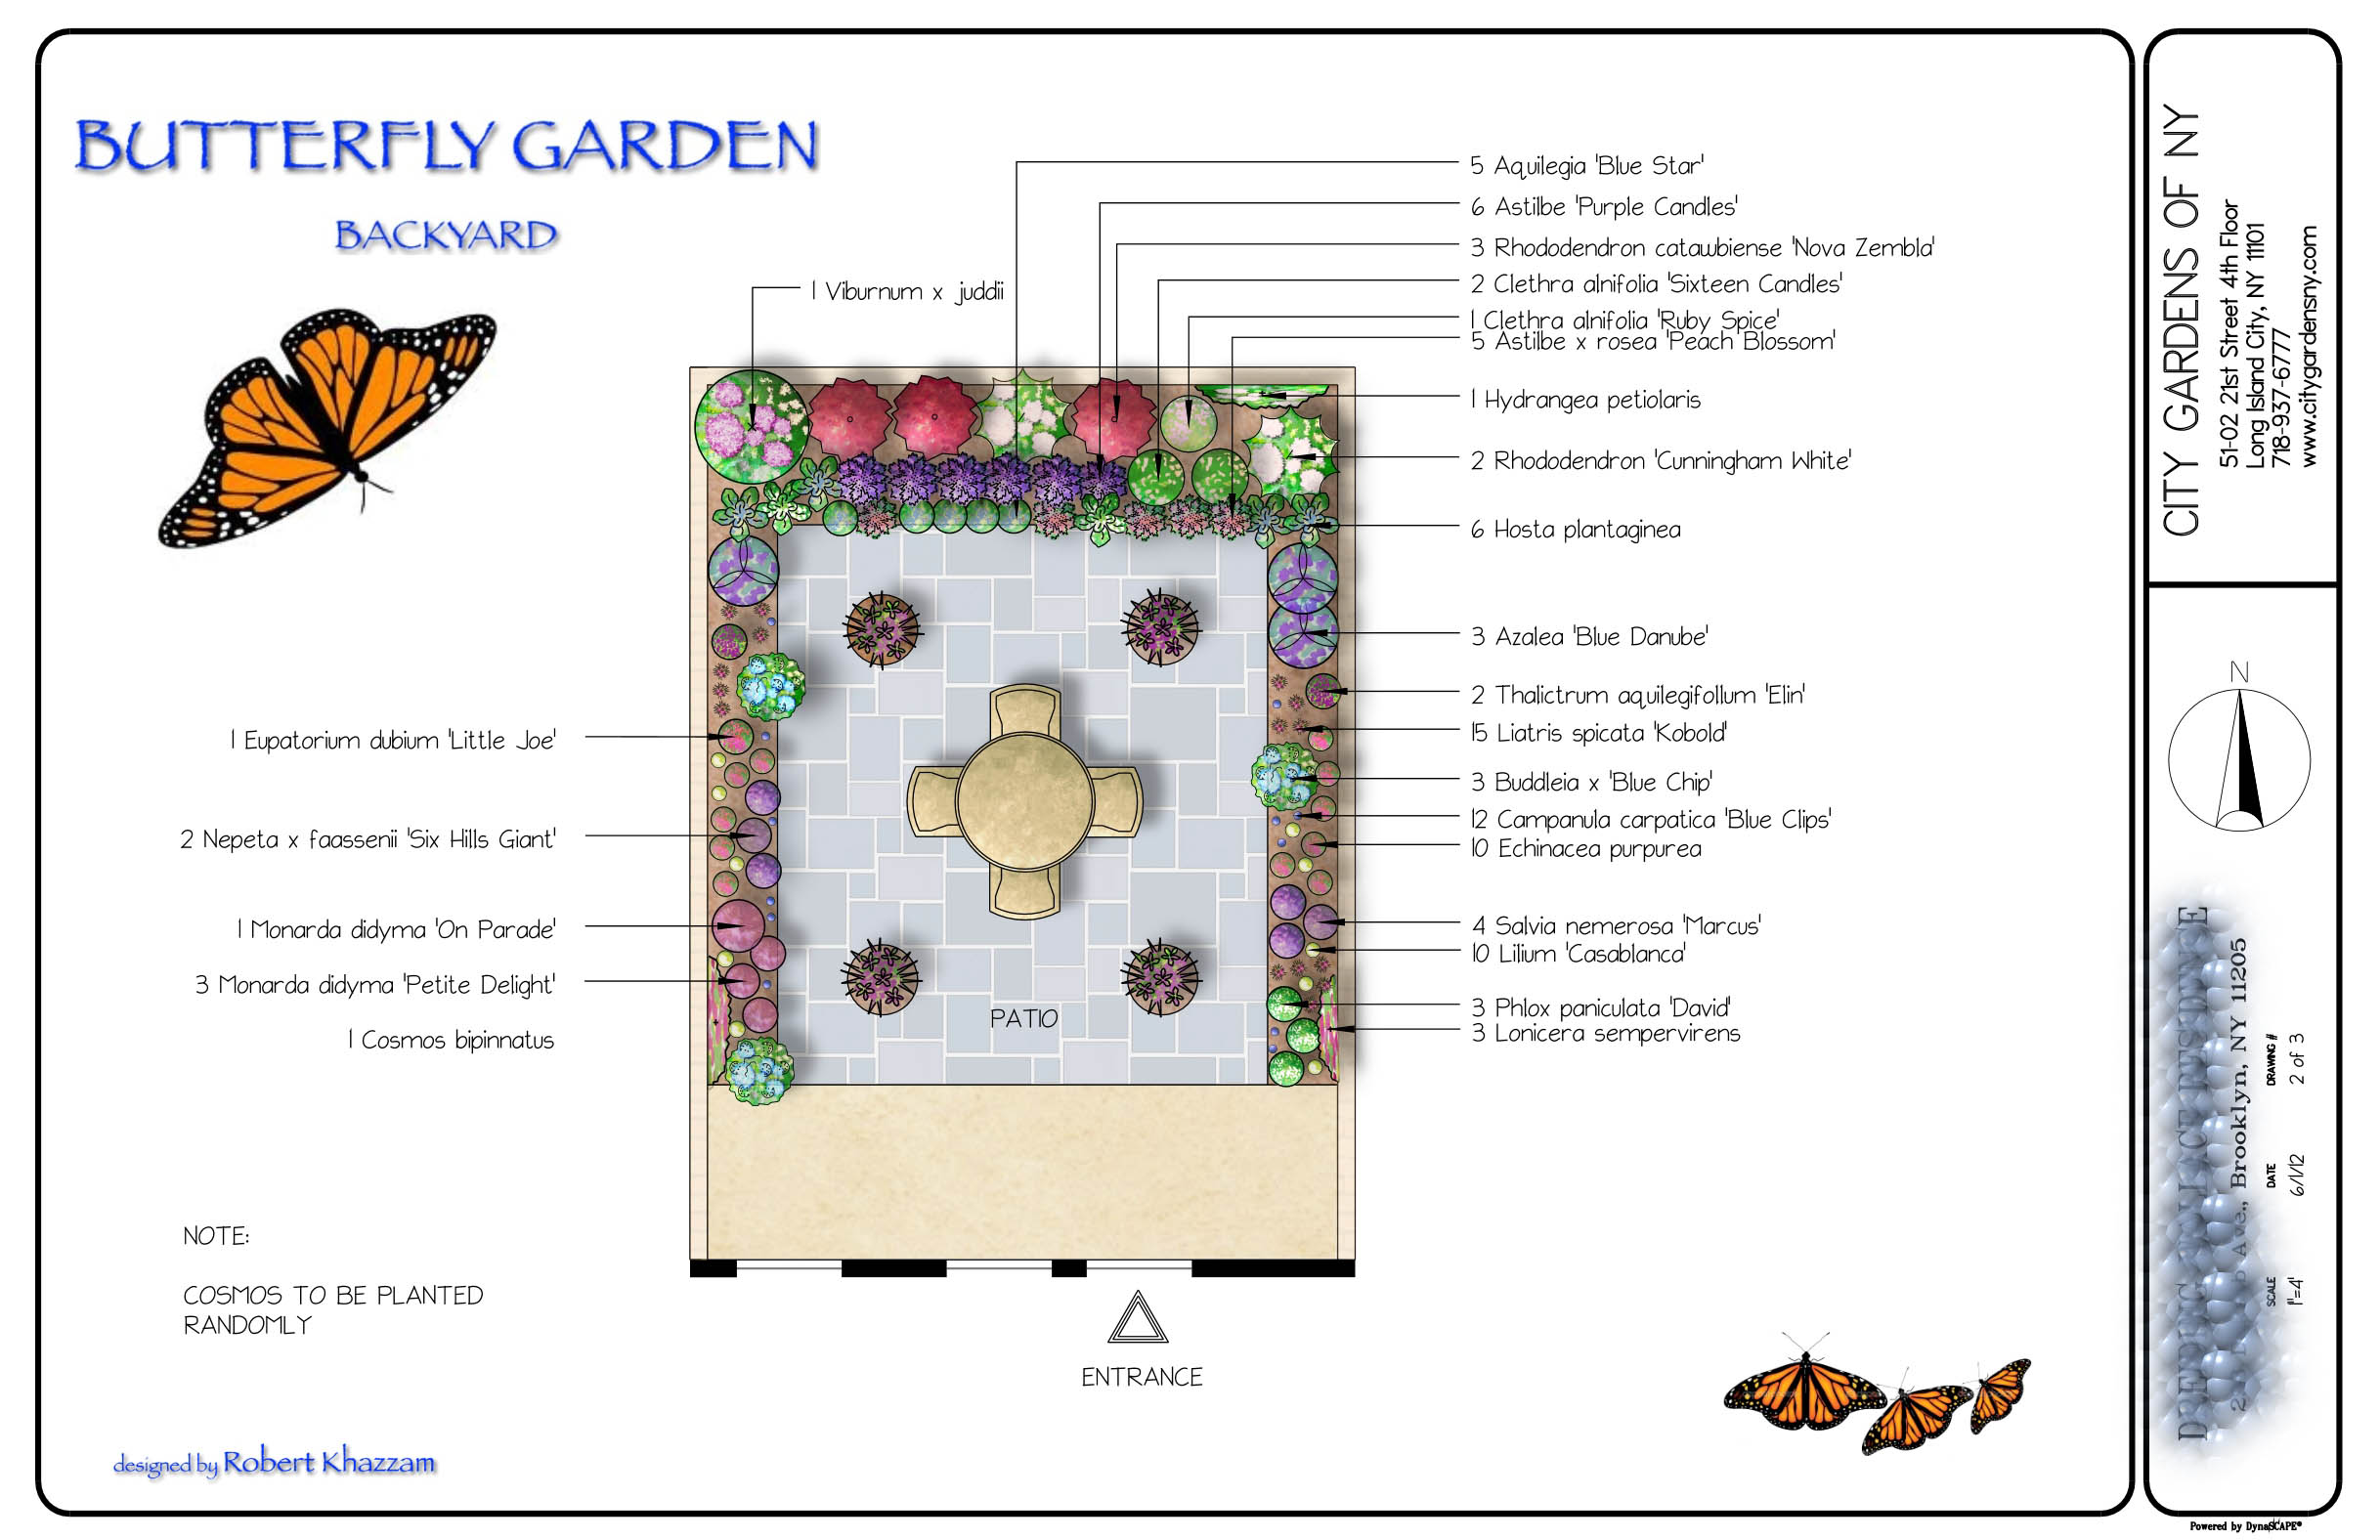 Butterfly Garden Ideas butterfly garden stepping stones for butterfly garden Butterfly Garden Design Image For Website1jpg Butterfly Garden Plans